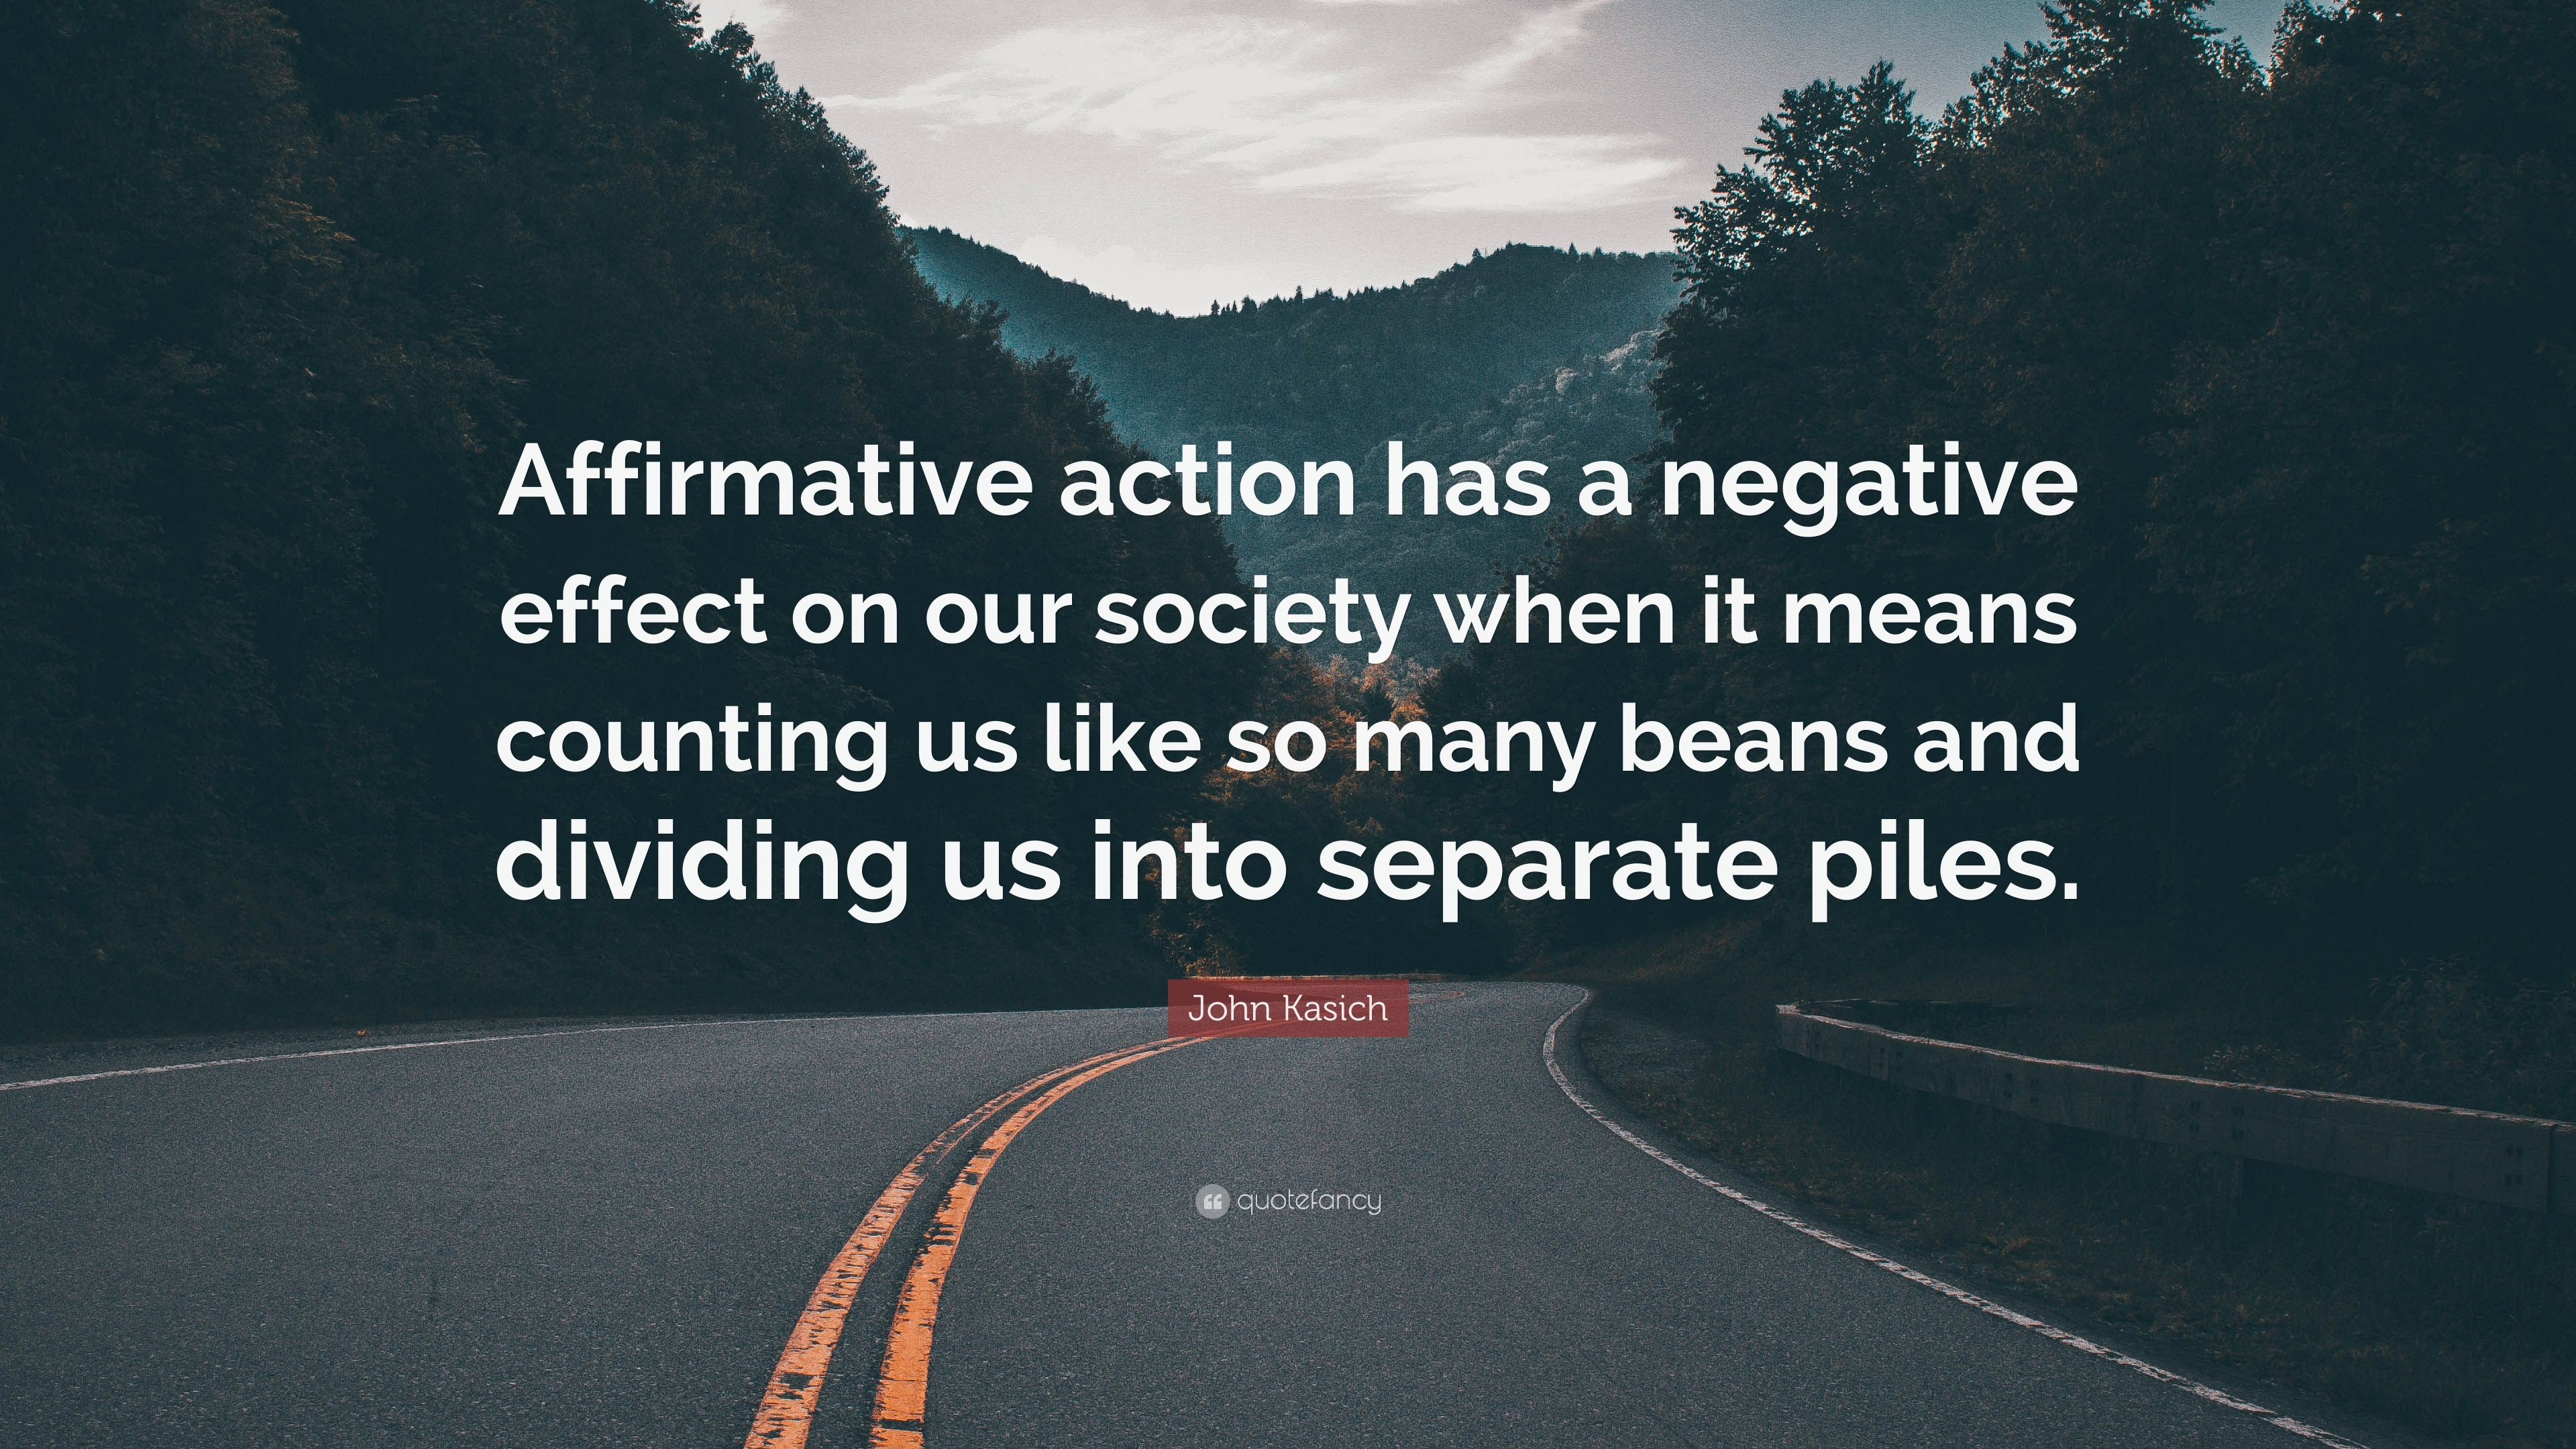 negative effects from affirmative action There is greater support for the principle of equal opportunity than for the principle of affirmative action very negative effects that affirmative action.